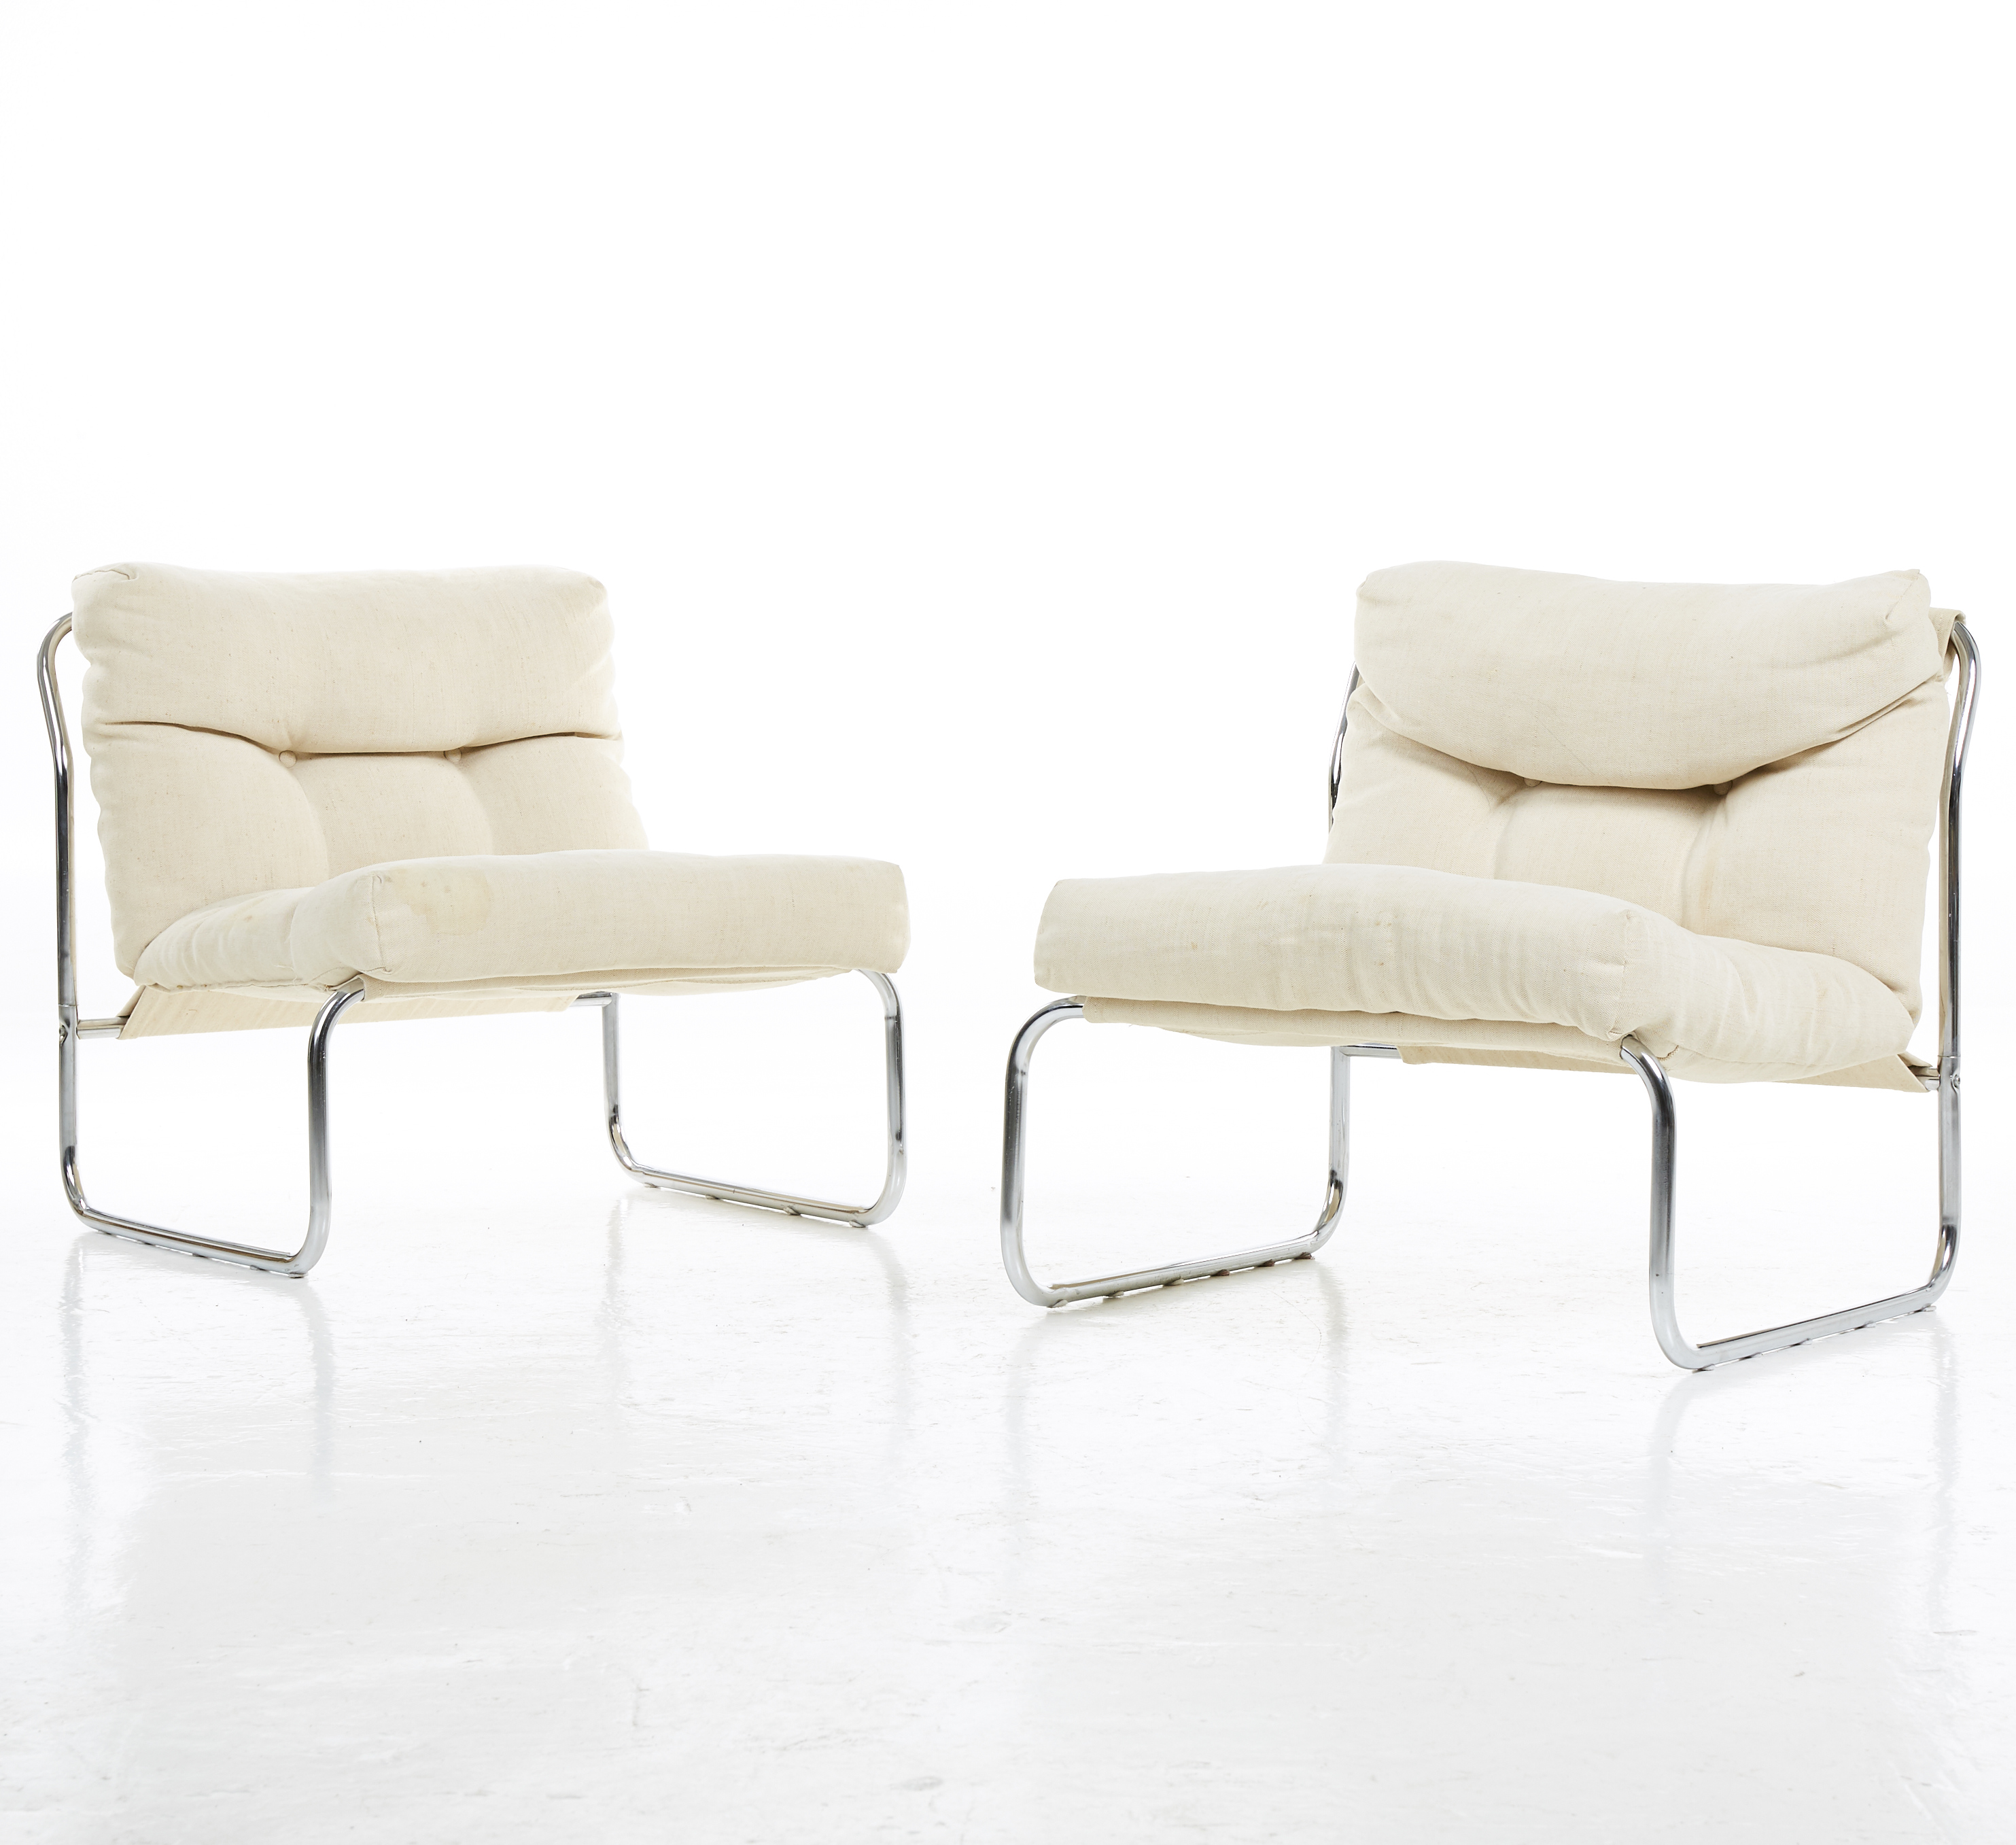 "This Weeks Auction: Gillis Lundgren ""Pixi"" chair by IKEA"